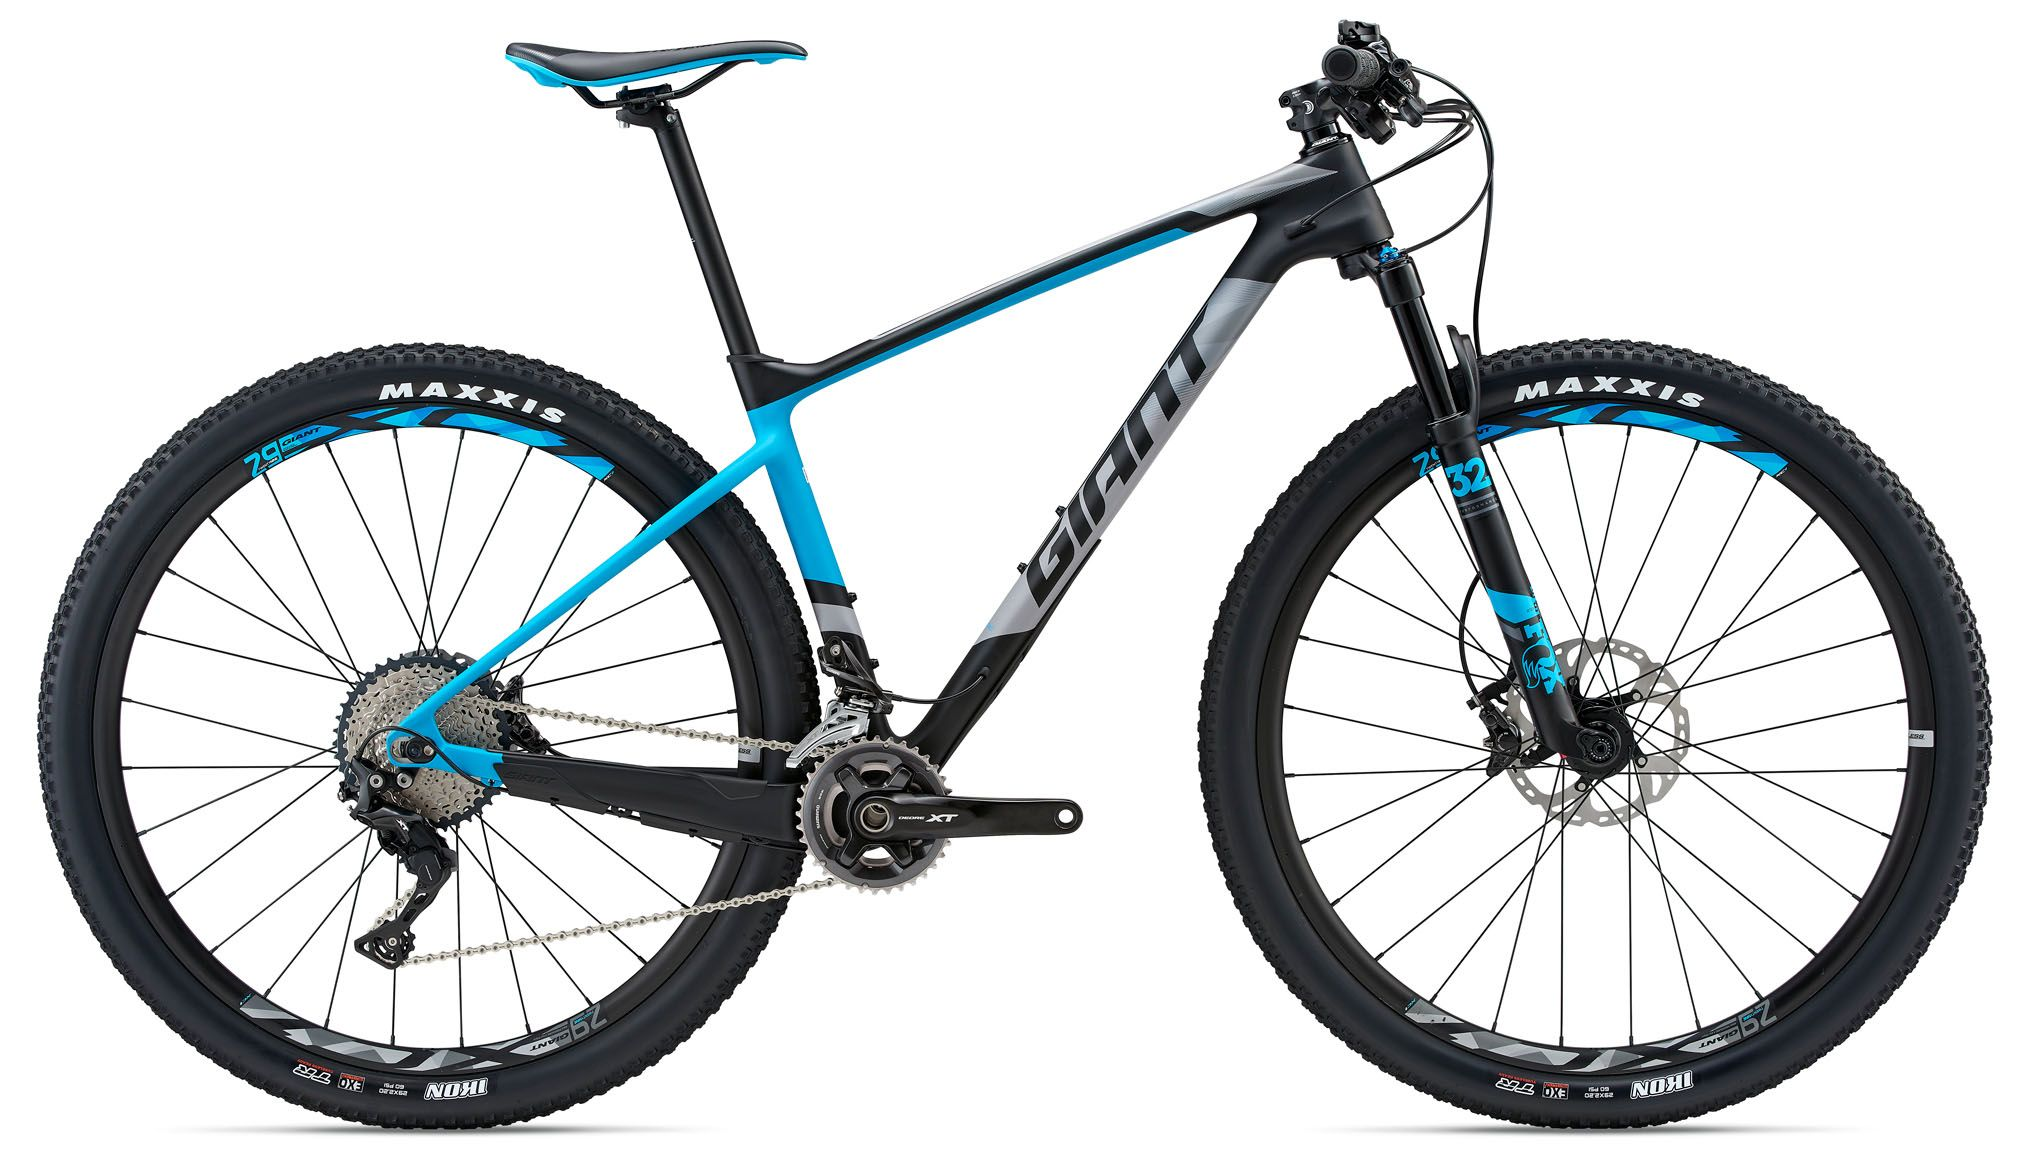 Велосипед Giant XTC Advanced 29er 1.5 GE 2018 велосипед giant xtc advanced 27 5 2 2016